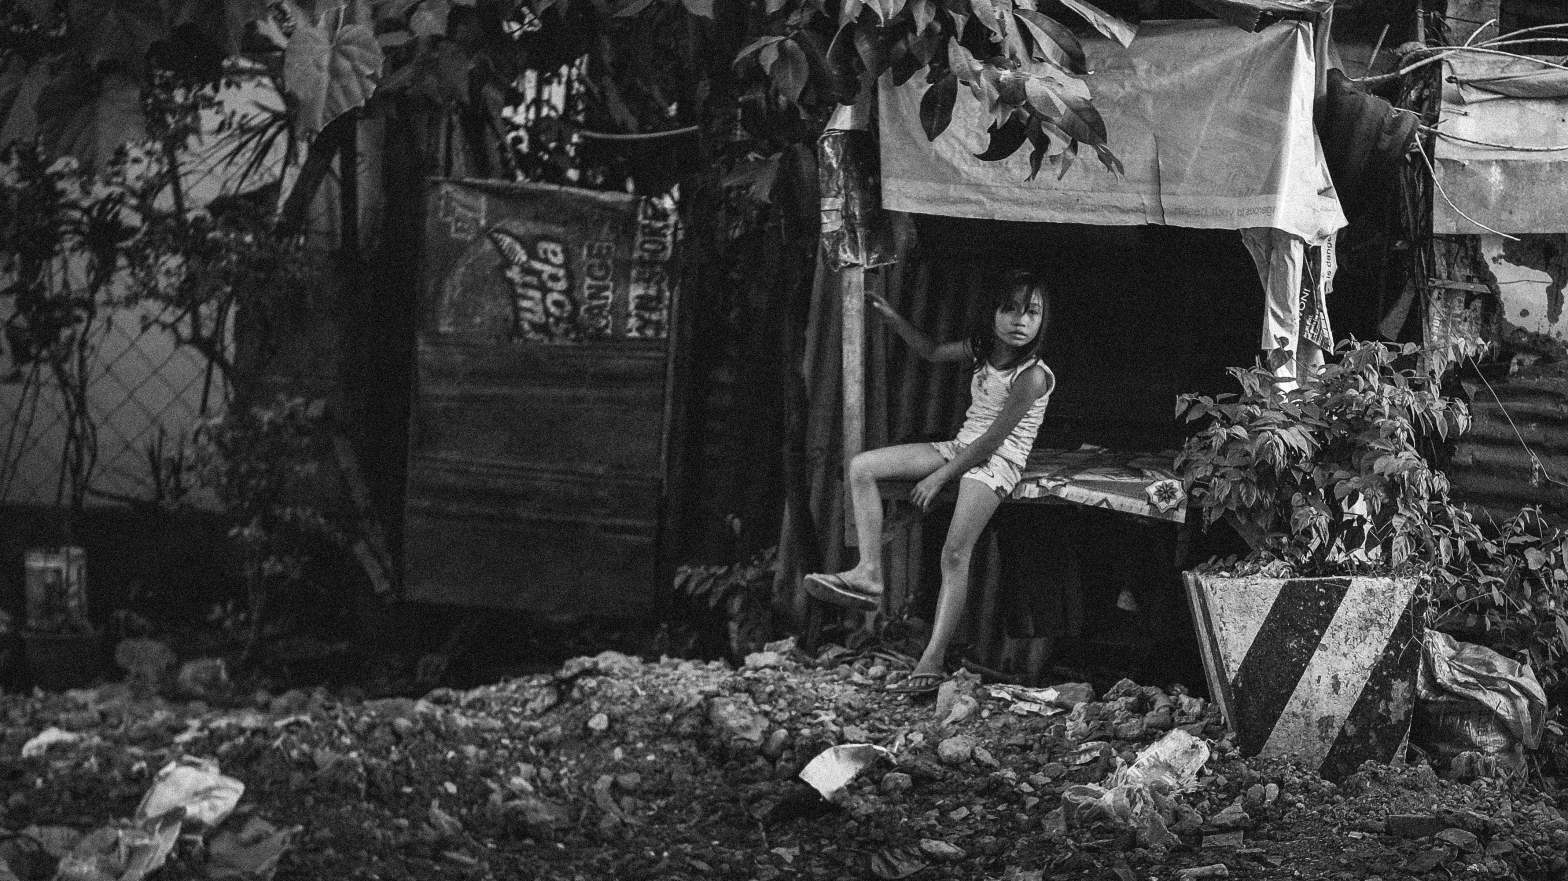 Girl in Poverty by Rainier Ridao on Unsplash